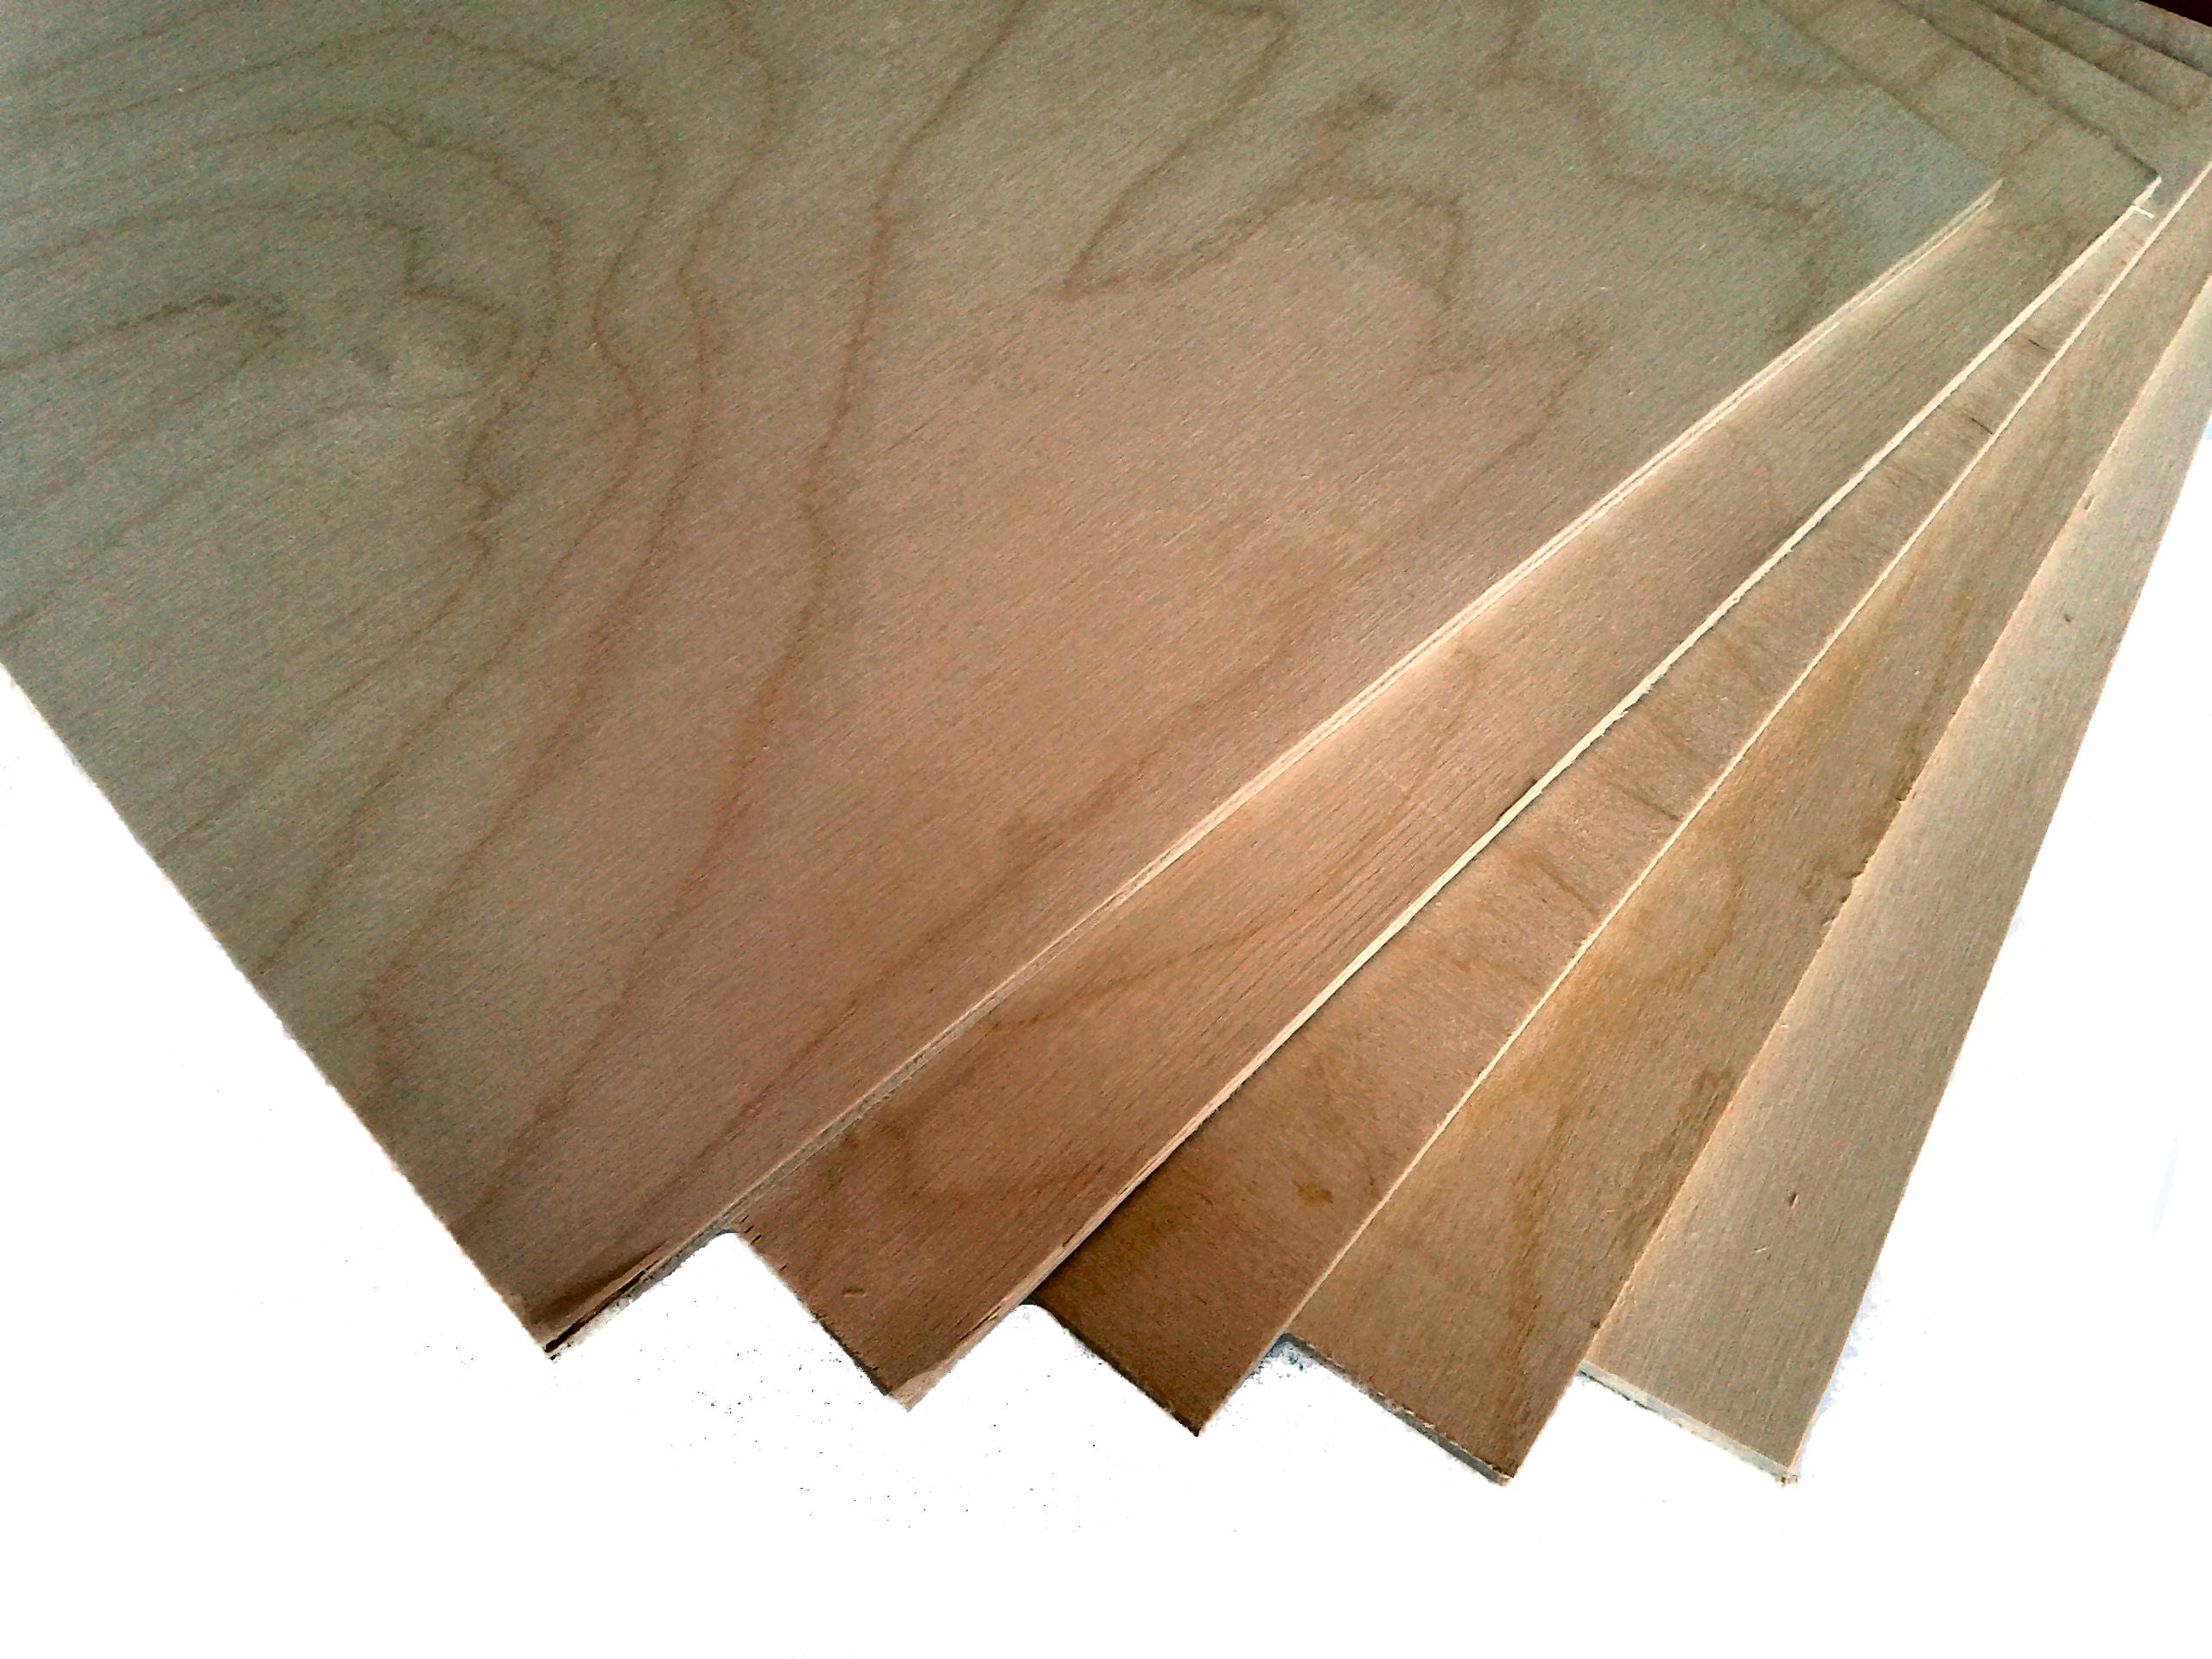 Standard Sheet Of Plywood ~ Woodwork birch plywood sheets pdf plans